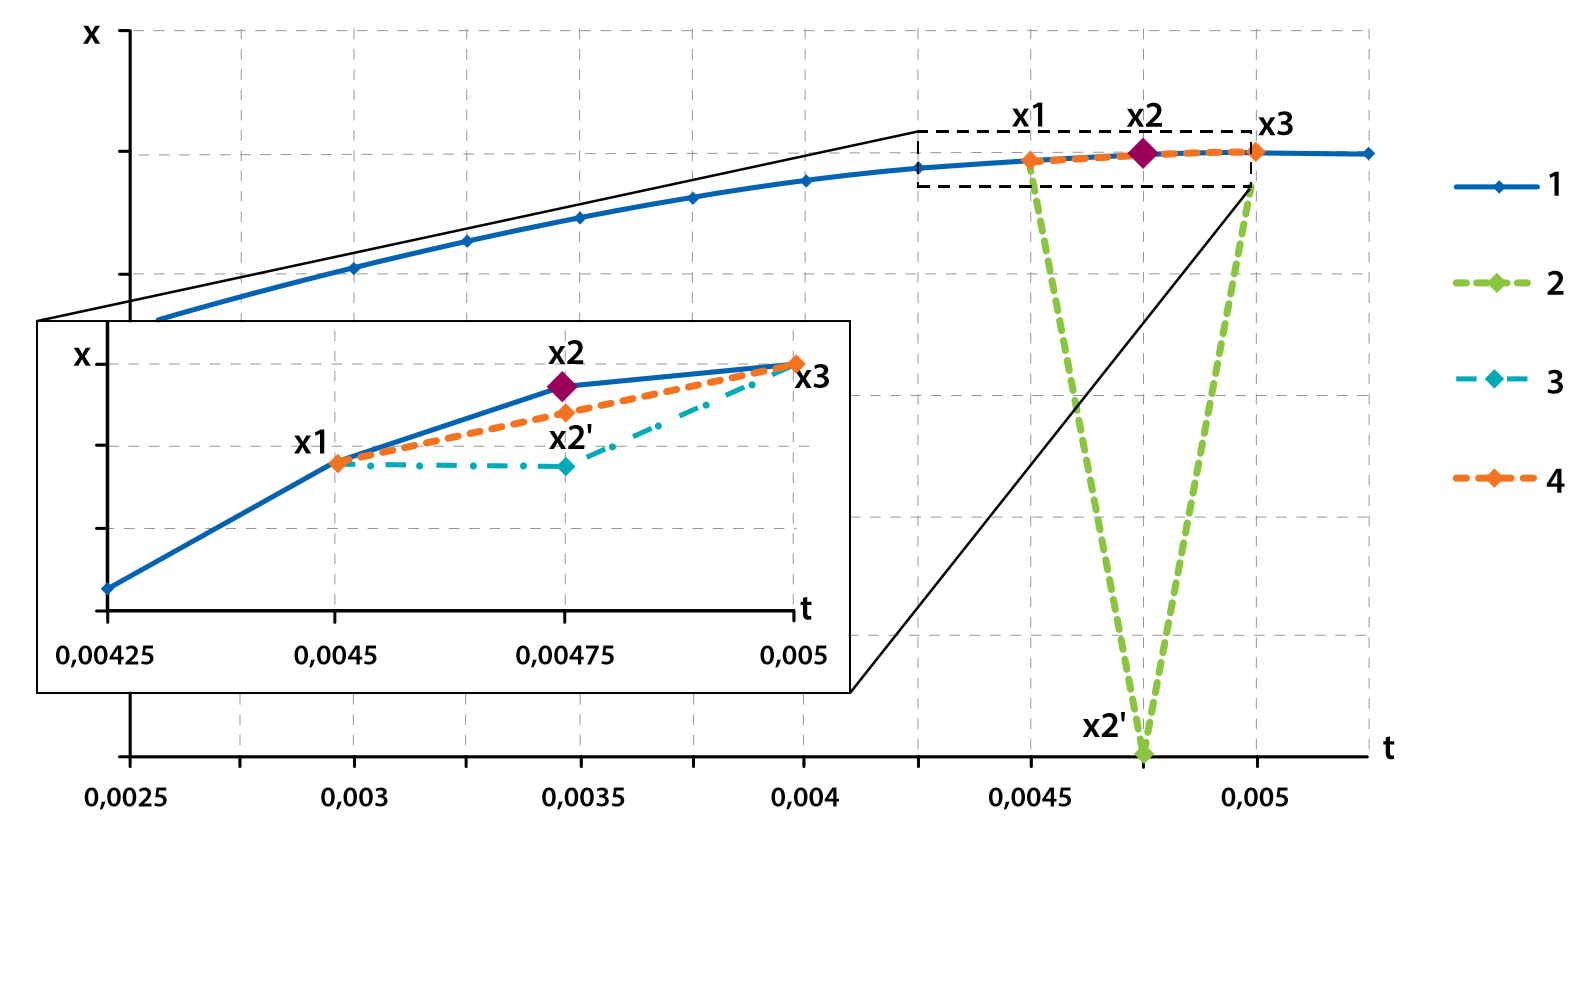 Figure 3. Methods of lost data recovery: curve 1 – original signal; curve 2 – zeroing out the lost reading; curve 3 – use of the previous reading; curve 4 – restoration of the lost sample through linear interpolation of the adjacent data points.